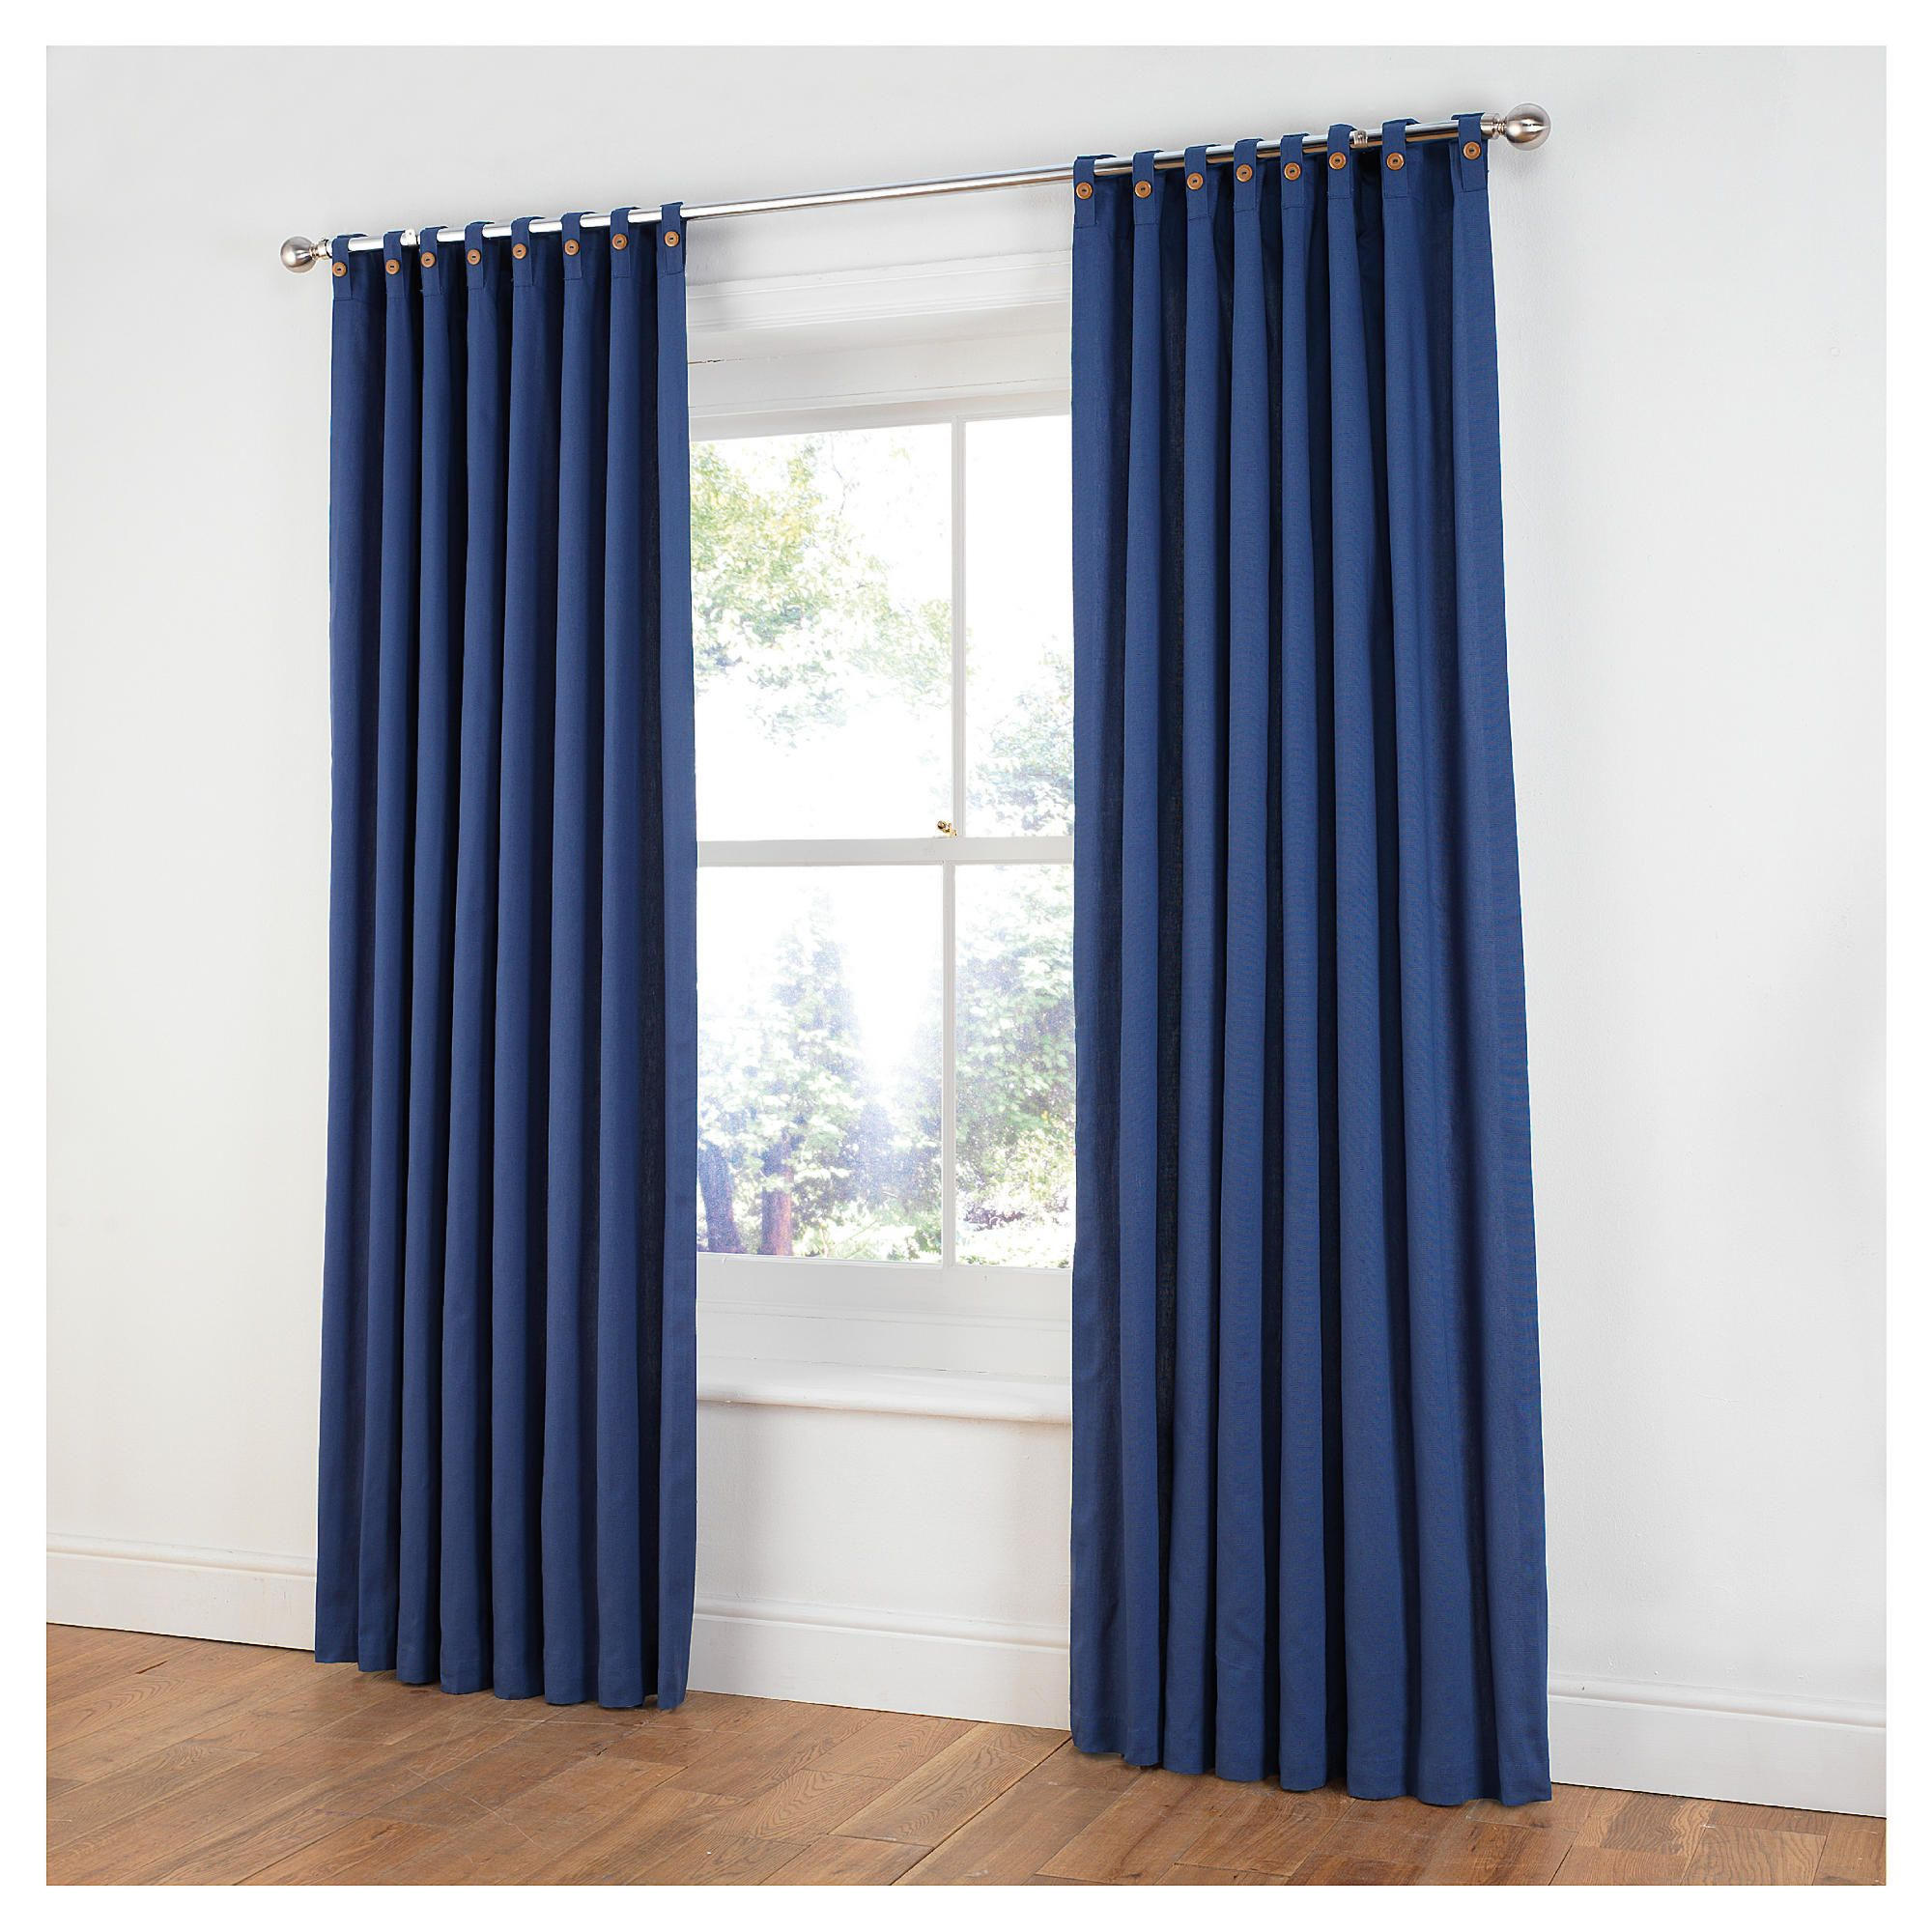 Light blue bedroom curtains - Tesco Navy Blue Curtains Curtain Designs